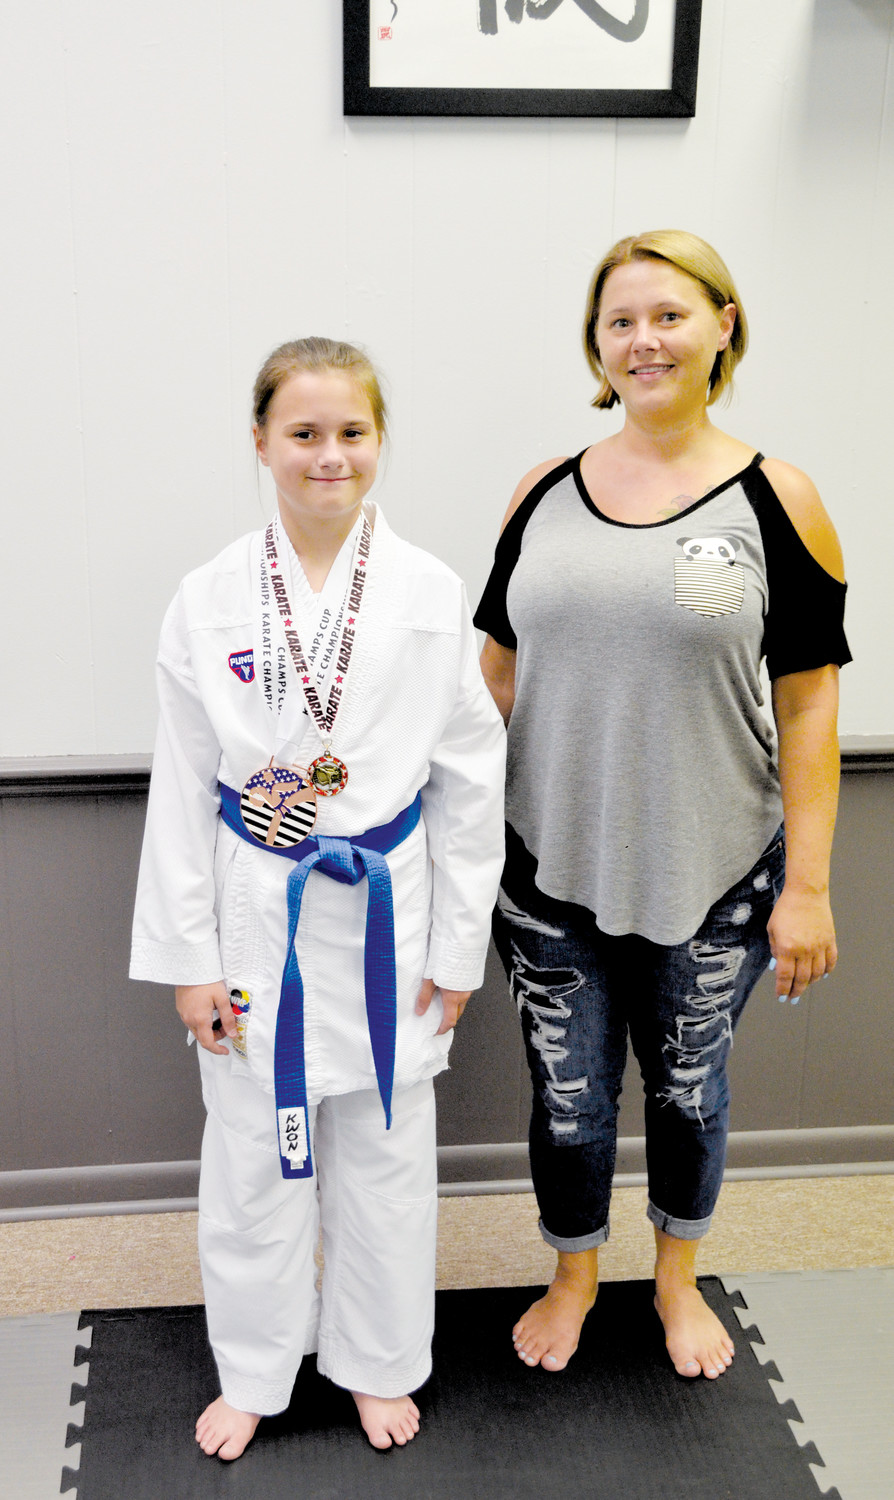 Virginia Harding, 11, attends Dunn Middle School. Virginia has been studying at Kokufuku School of Martial Arts for two years and recently earned a bronze medal in Kata and a silver in Kumate. Her mother, Kelly Greene, right, of Dunn is very proud.